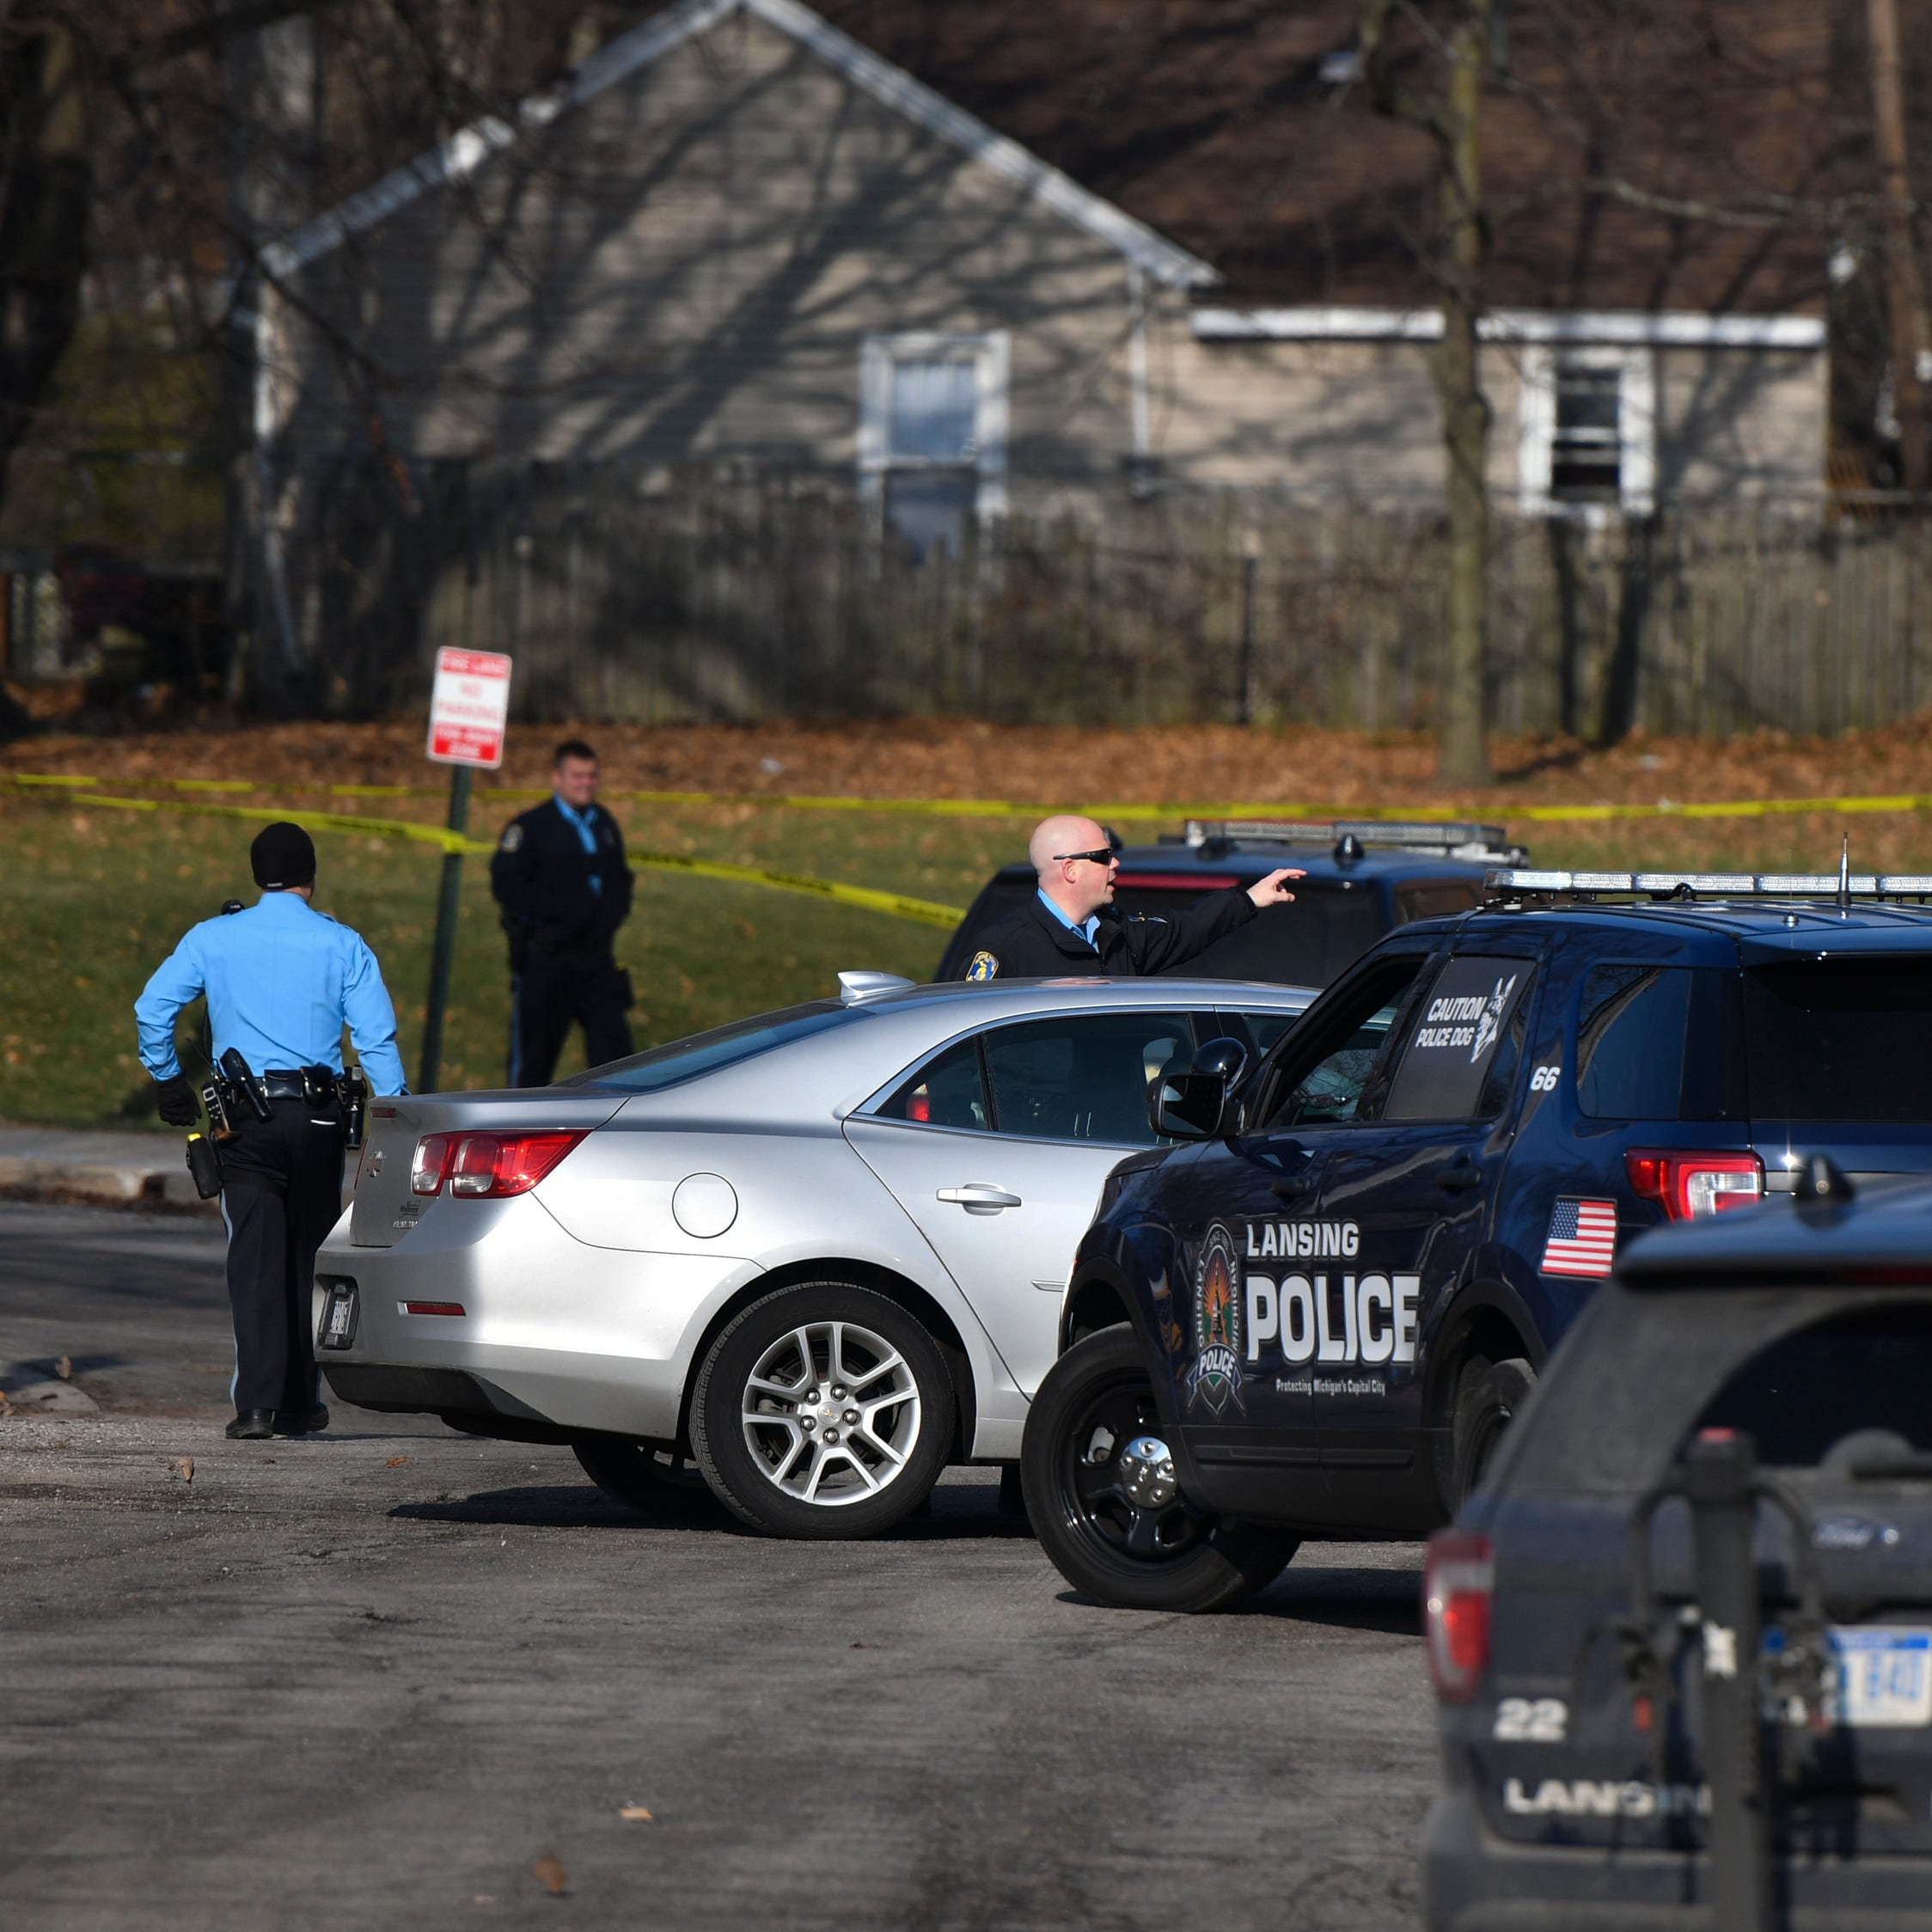 Lansing police make arrest two days after murder on city's south side